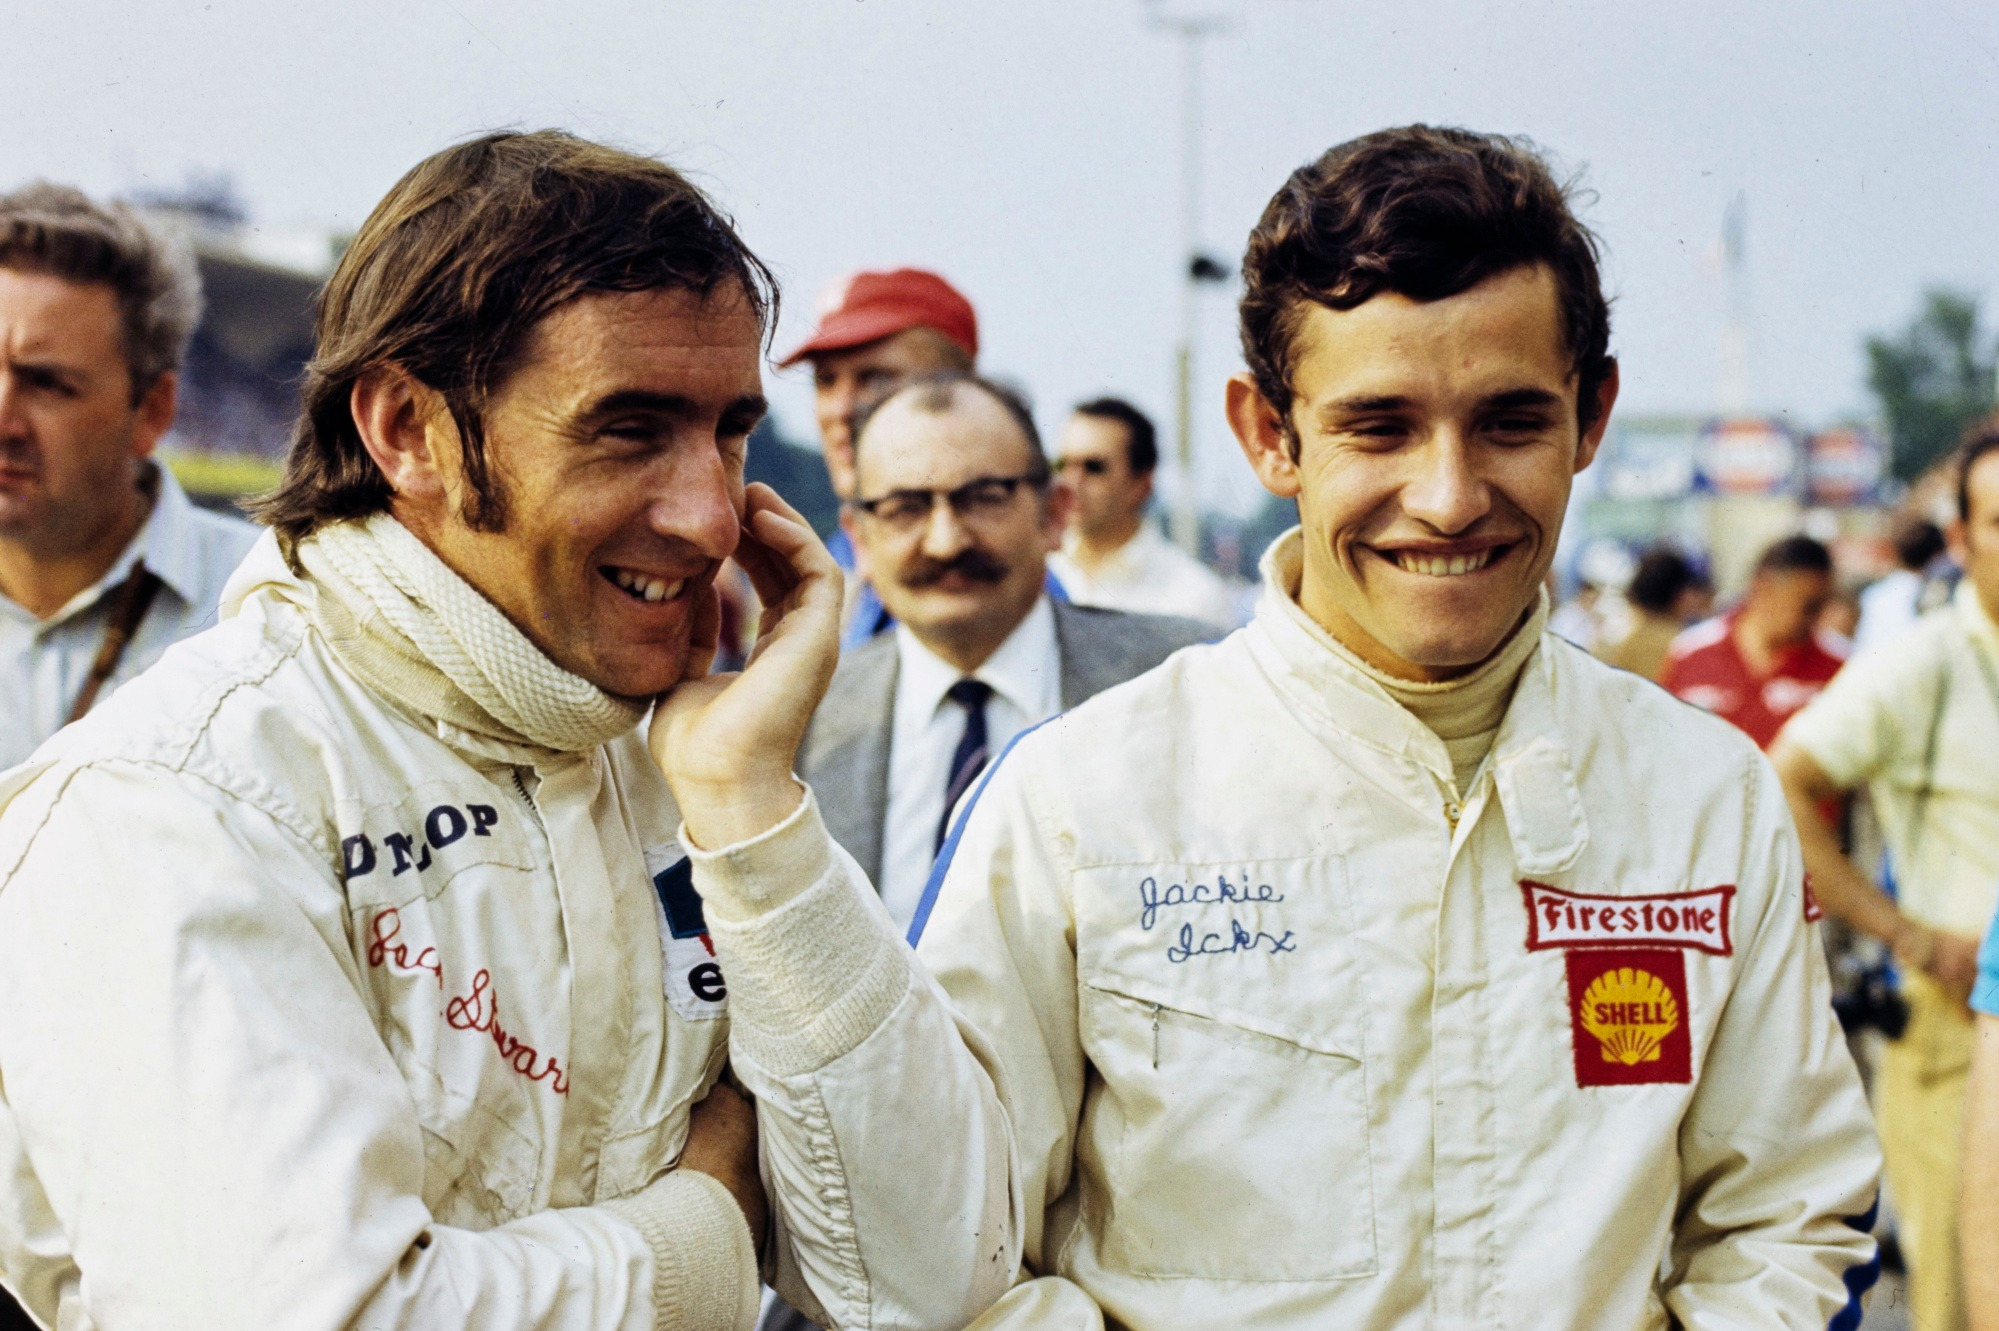 Stewart elected not to take up Ferrari's offer, leaving the path clear for Ickx - but it proved a blessing in disguise for the Belgian